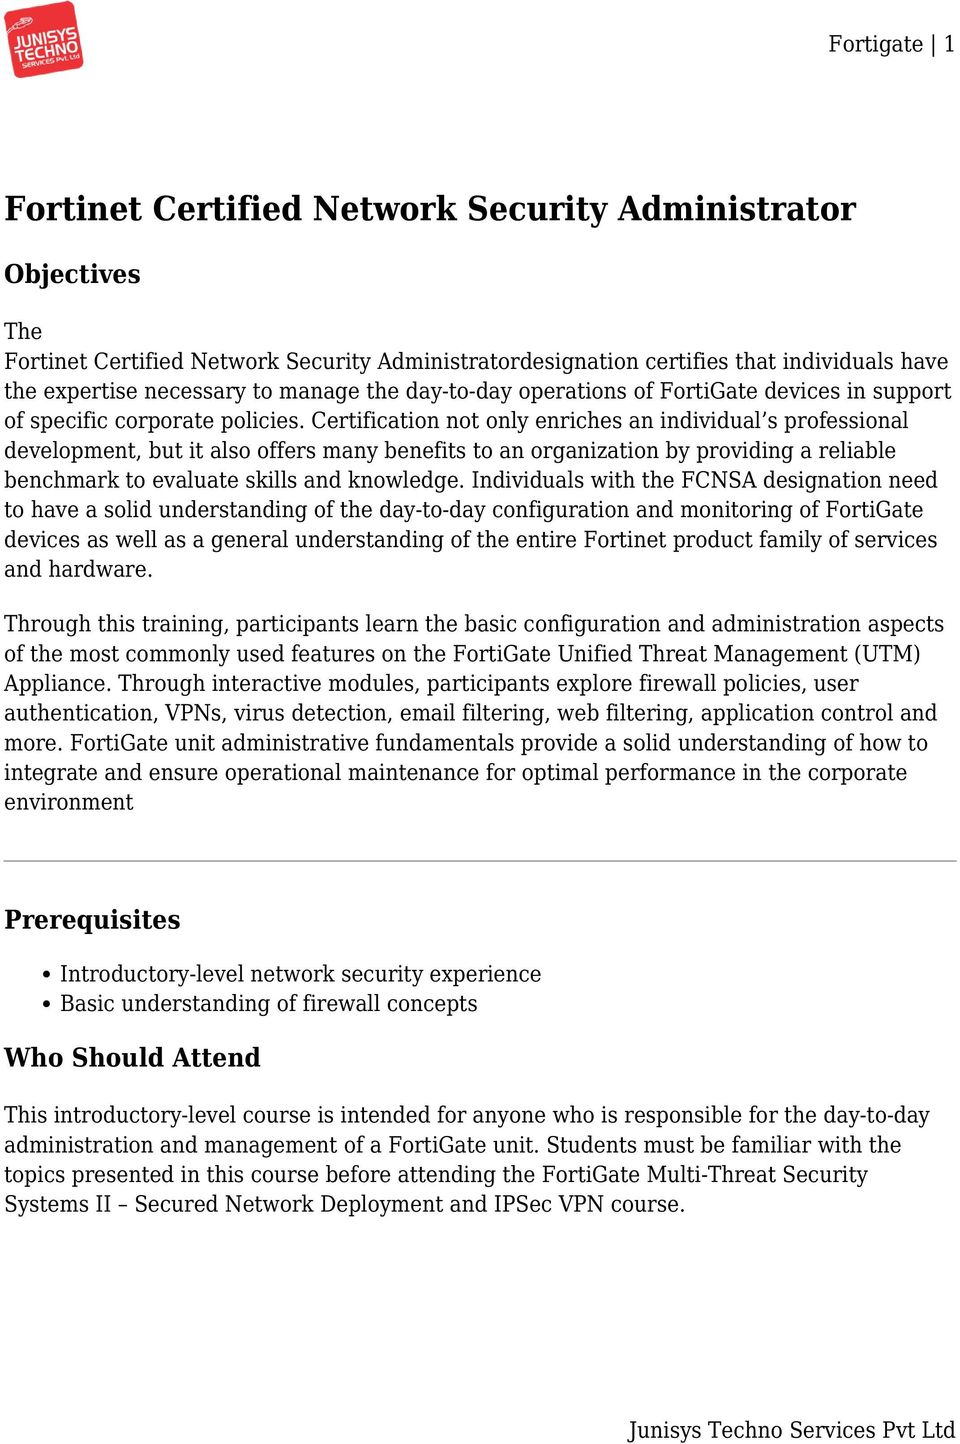 Fortinet Certified Network Security Administrator Pdf